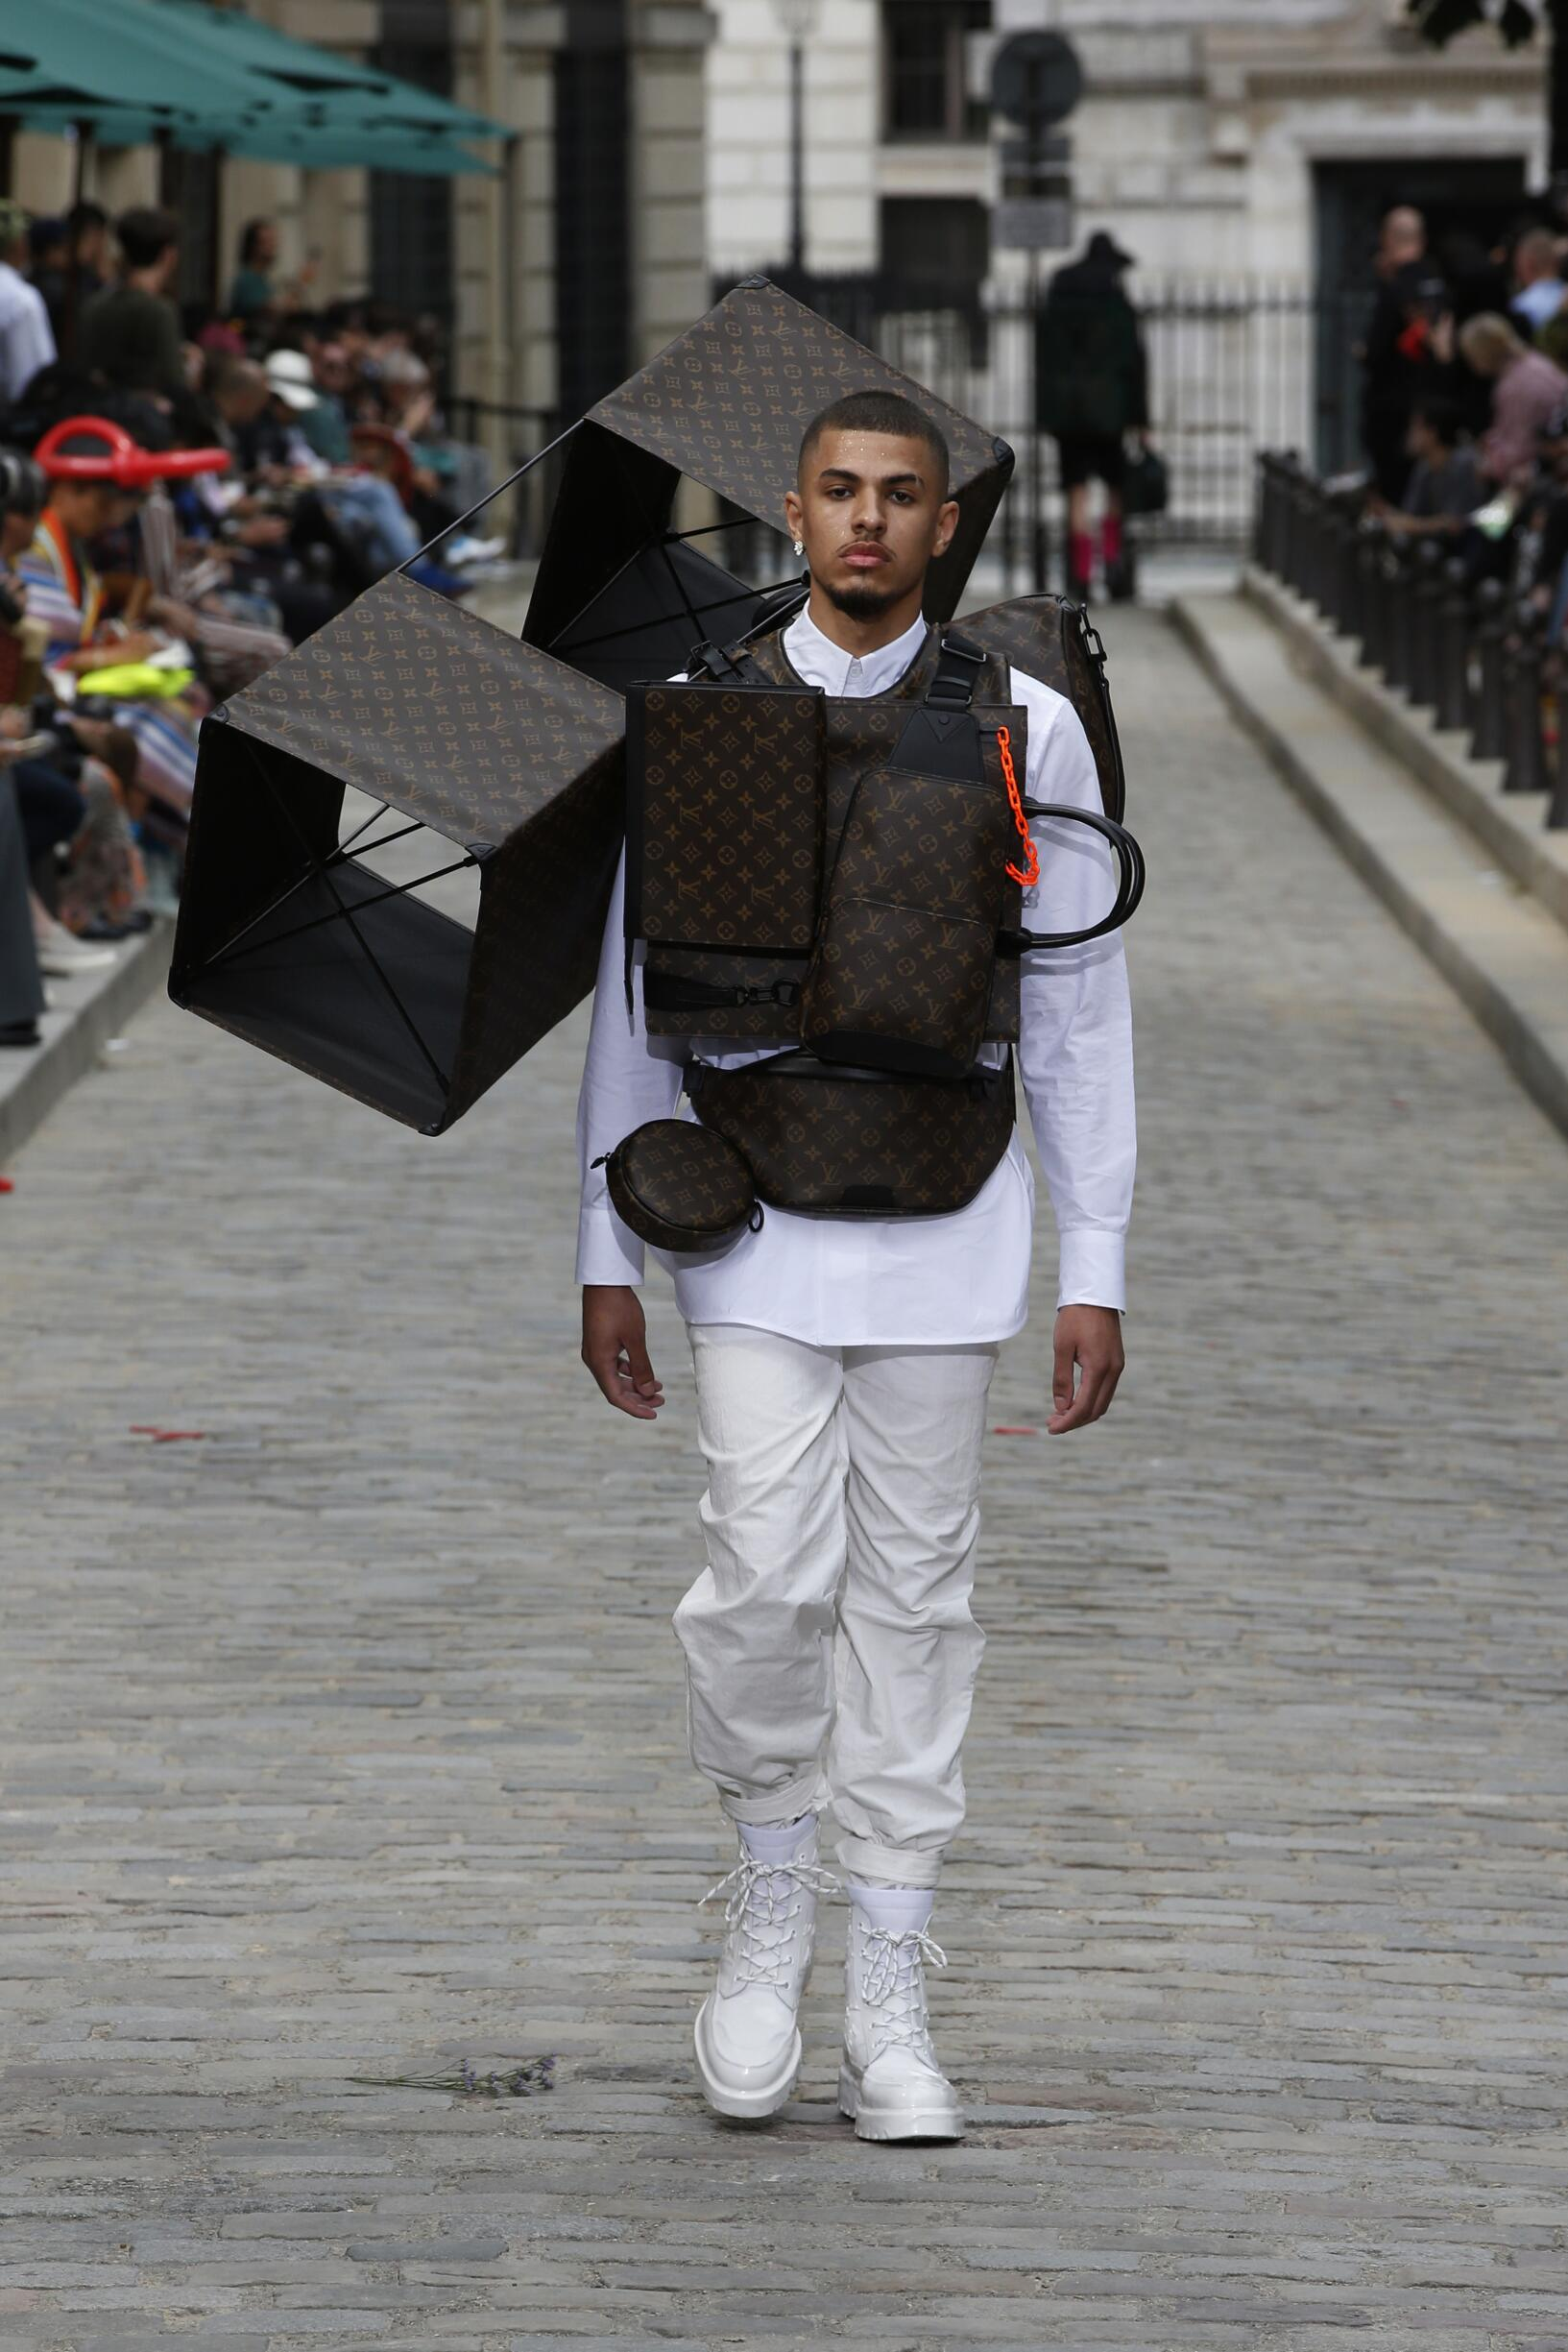 Louis Vuitton Menswear Collection Trends